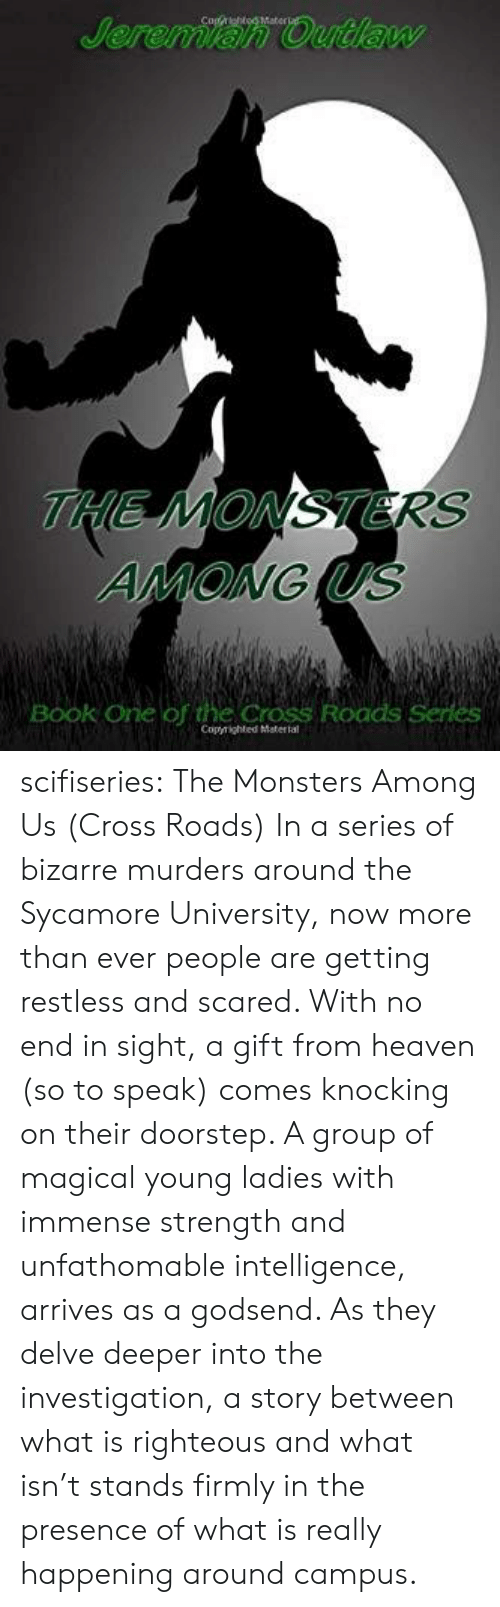 Among: Jeremian Outlaw  THE MONSTERS  AMONG US  Book One of the Cross Roads Series  Copyrighted Matertal scifiseries:  The Monsters Among Us (Cross Roads)  In a series of bizarre murders around  the Sycamore University, now more than ever people are getting restless  and scared. With no end in sight, a gift from heaven (so to speak)  comes knocking on their doorstep. A group of magical young ladies with  immense strength and unfathomable intelligence, arrives as a godsend. As  they delve deeper into the investigation, a story between what is  righteous and what isn't stands firmly in the presence of what is really  happening around campus.